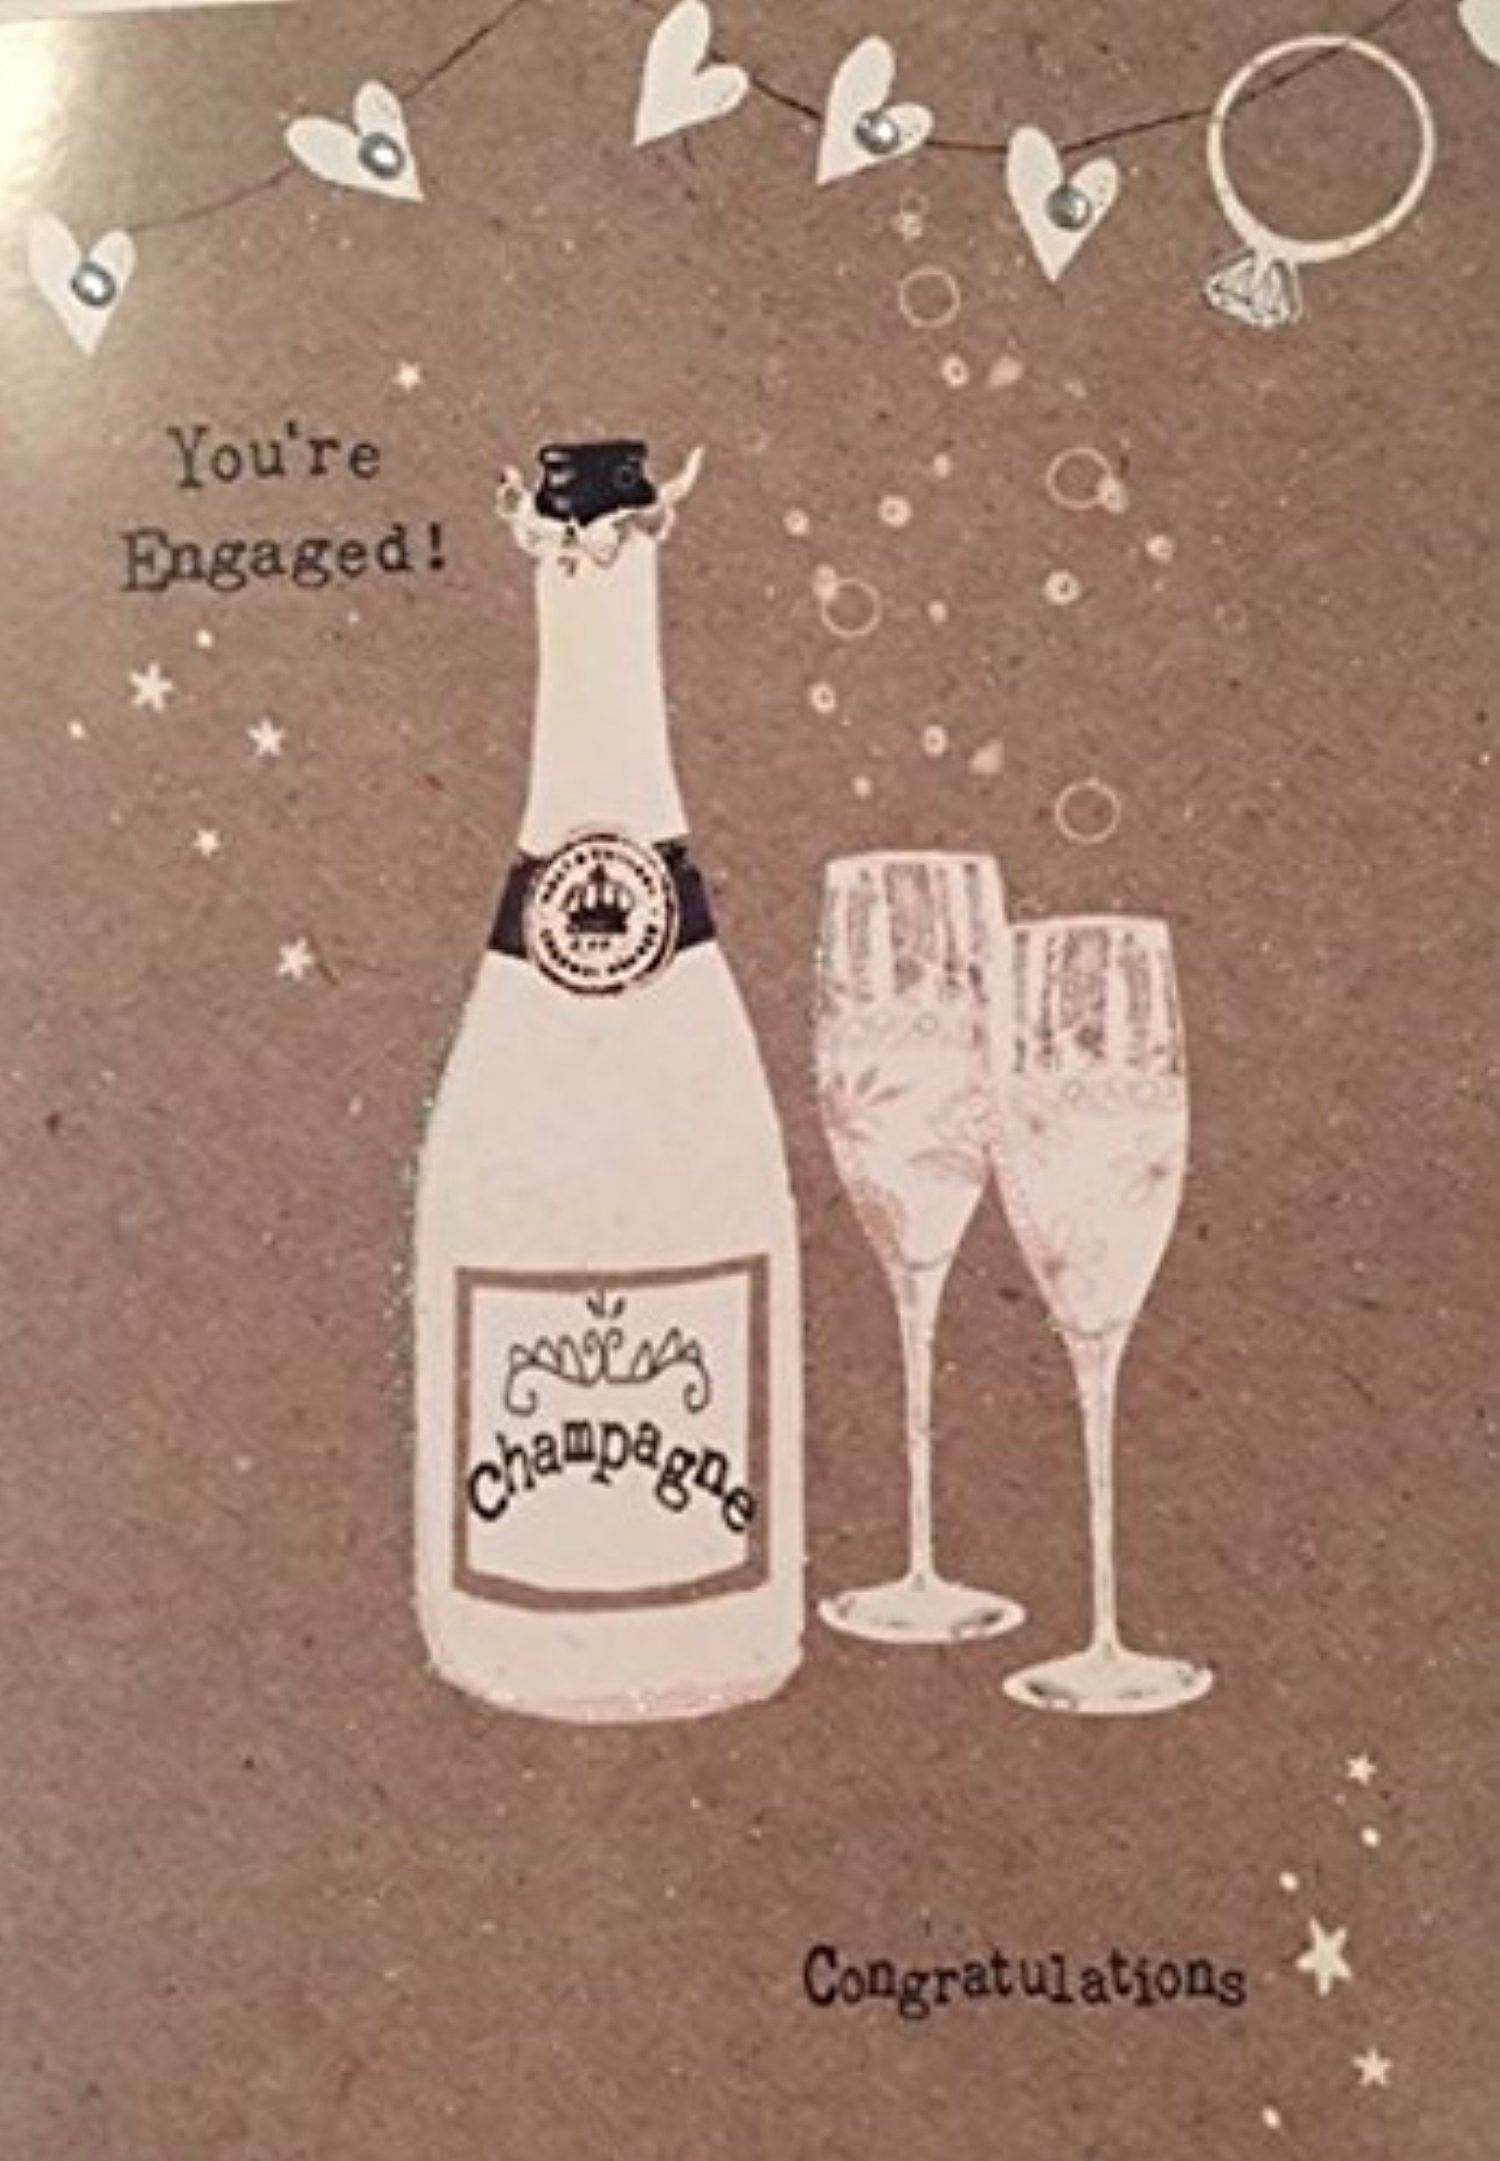 Gem Embellished Youre Engaged Congratulations Greeting Card 1